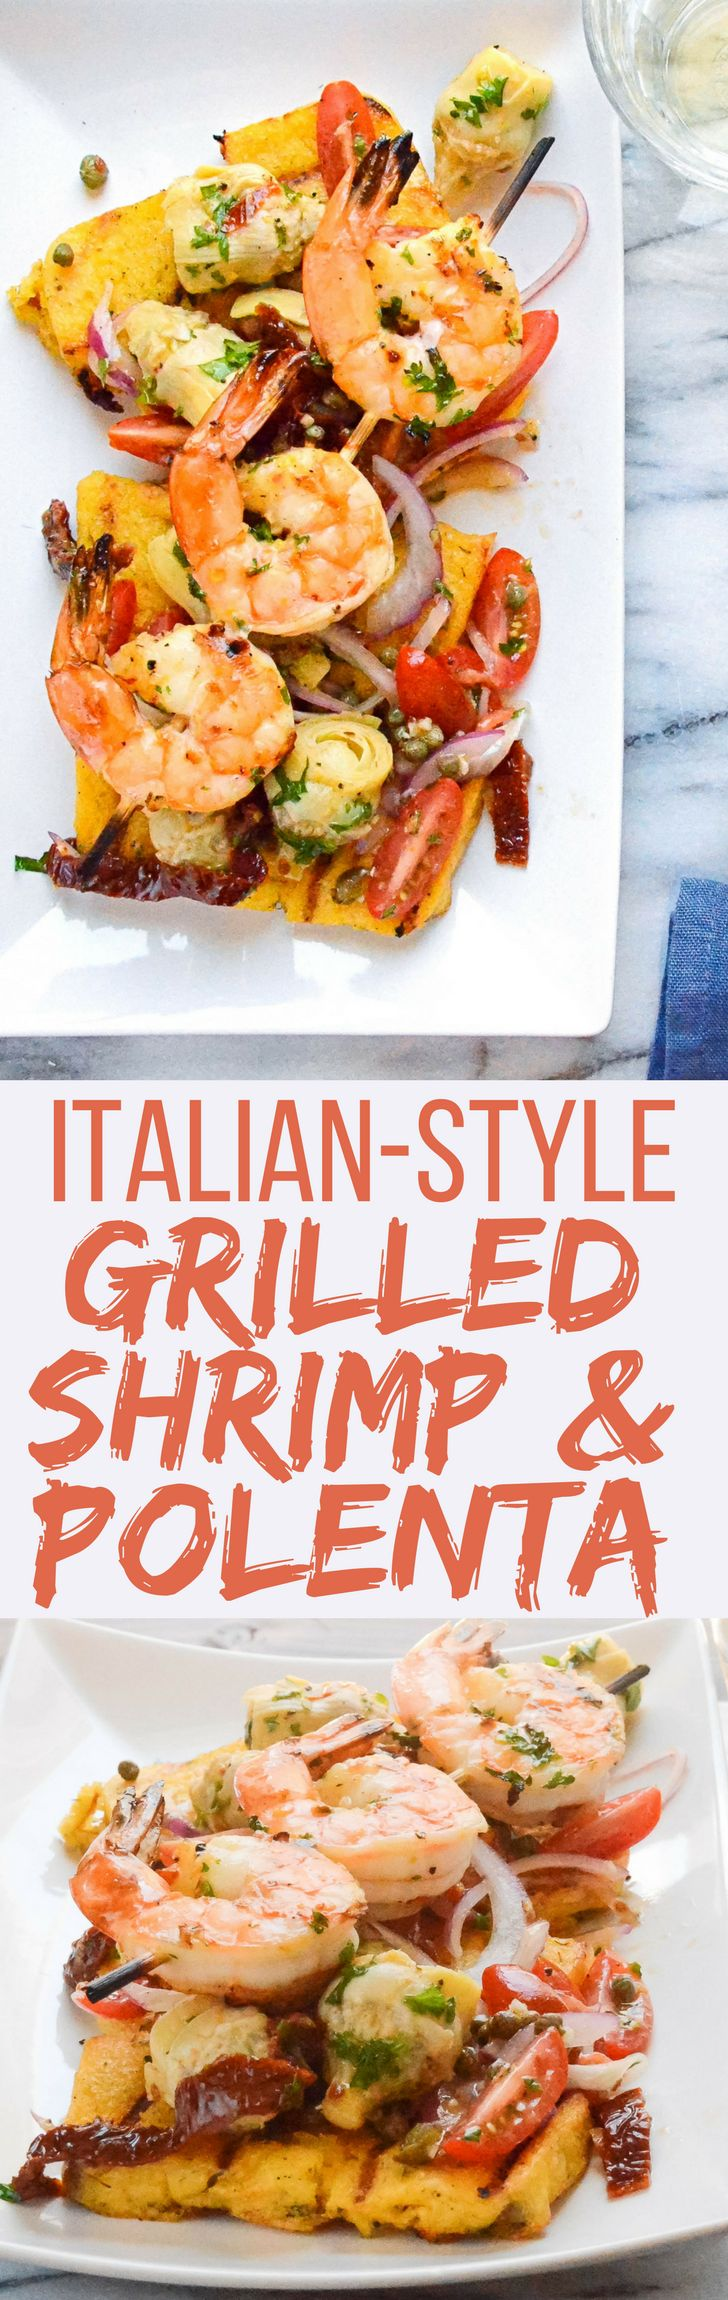 Need a good grilled shrimp recipe? Italian-Style Grilled Shrimp and Polenta is it! A great summer dish for entertaining with artichokes, capers & tomatoes! #shrimp #grilled shrimp #seafood #grilledseafood #summergrilling #polenta #artichokes #tomatoes #gulfshrimp #colavita #ad